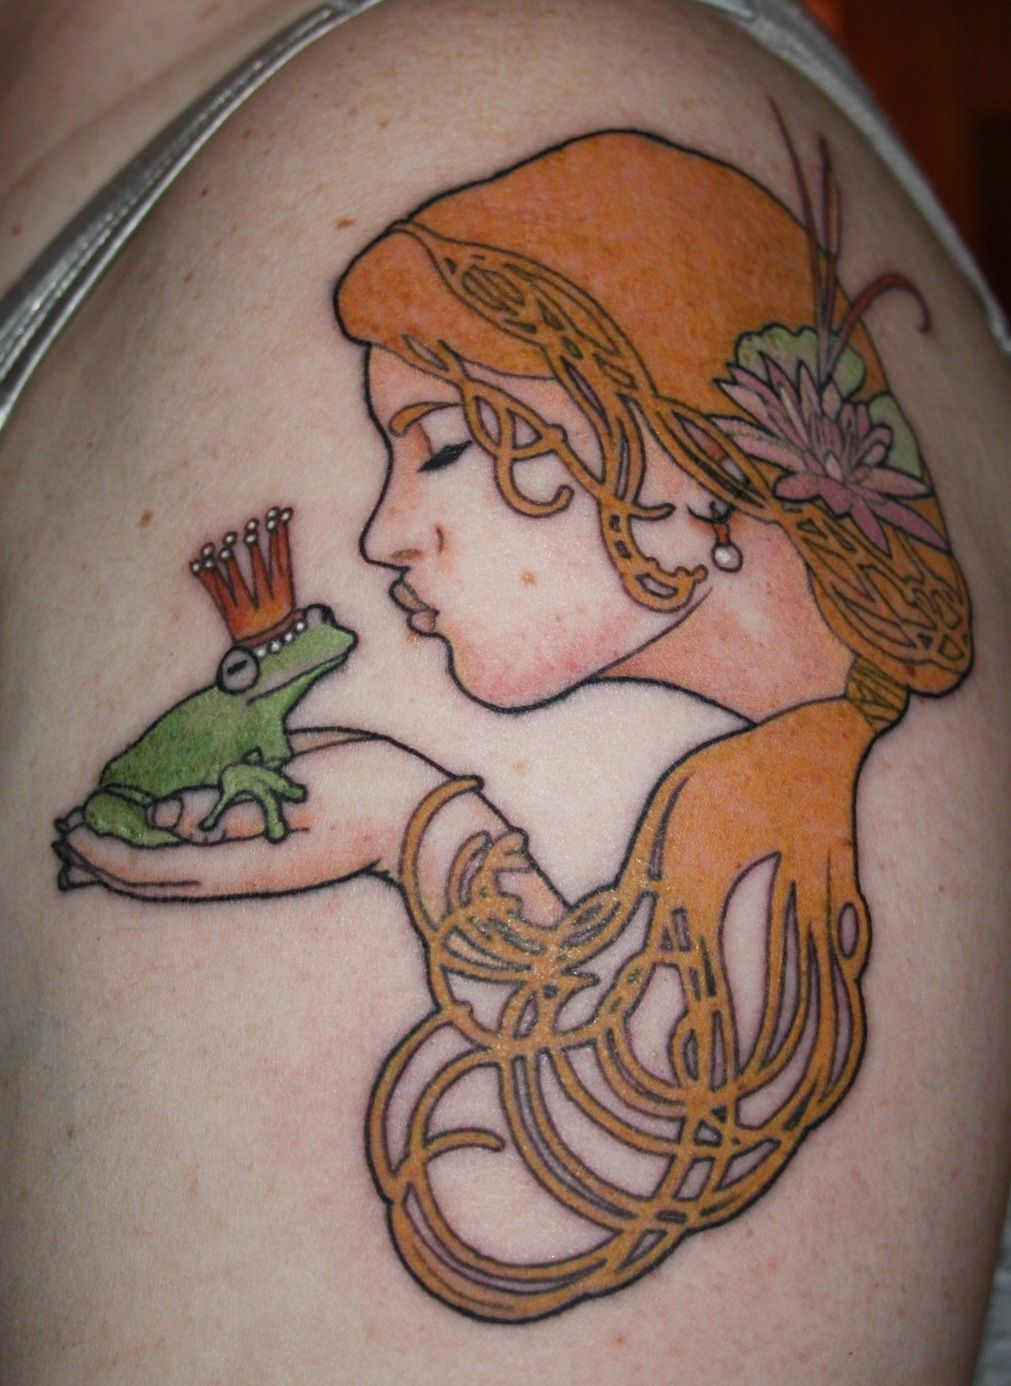 Princess and Frog tattoo done by Danny Derrick at Sink or